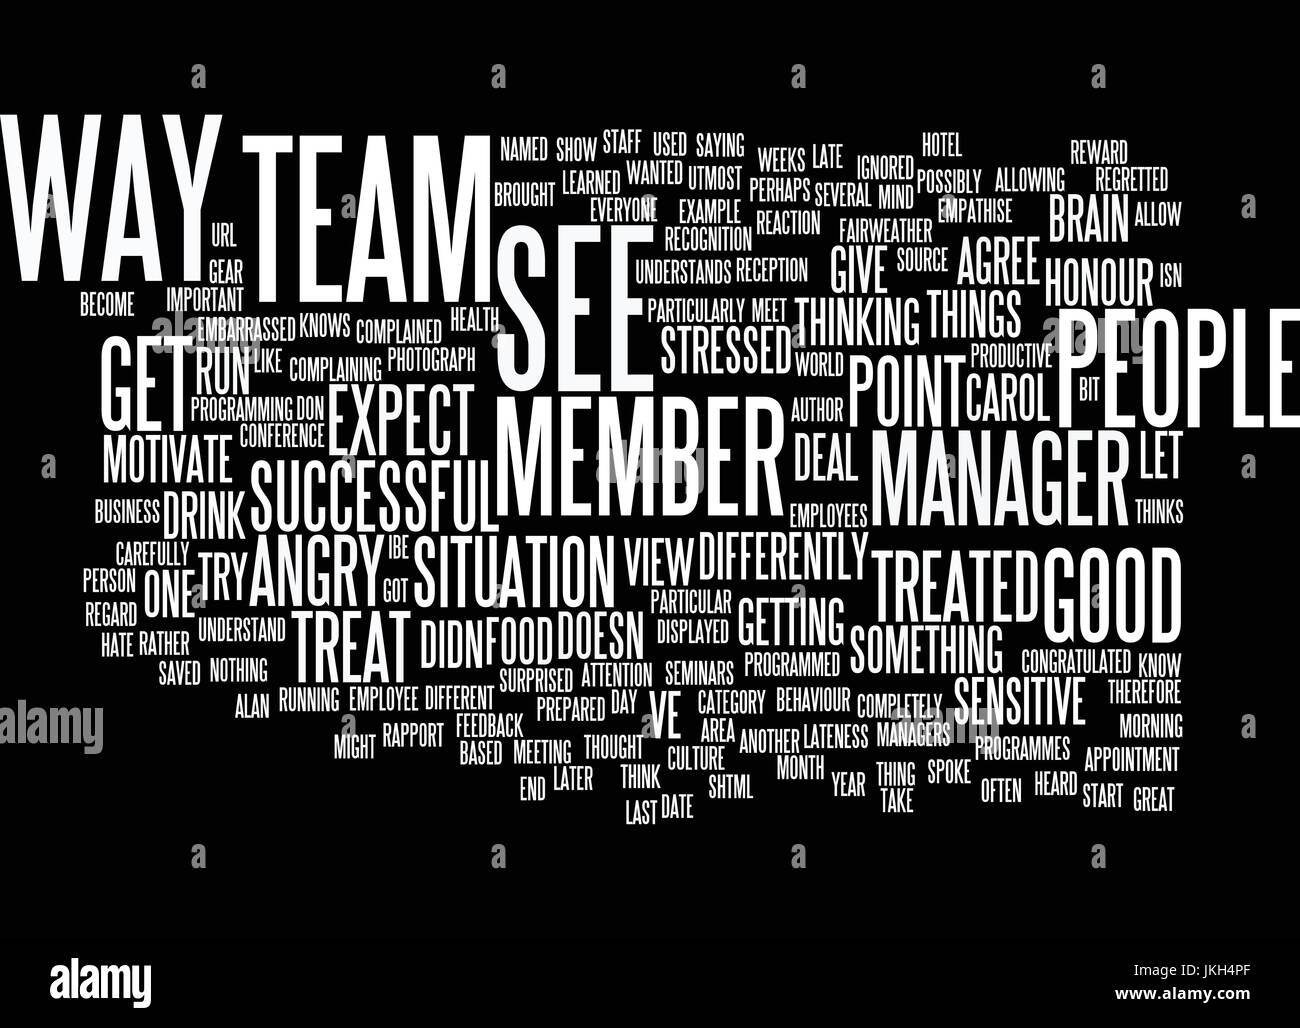 EMPLOYEES TREAT THEM THE WAY THEY EXPECT TO BE TREATED Text Background Word Cloud Concept - Stock Vector